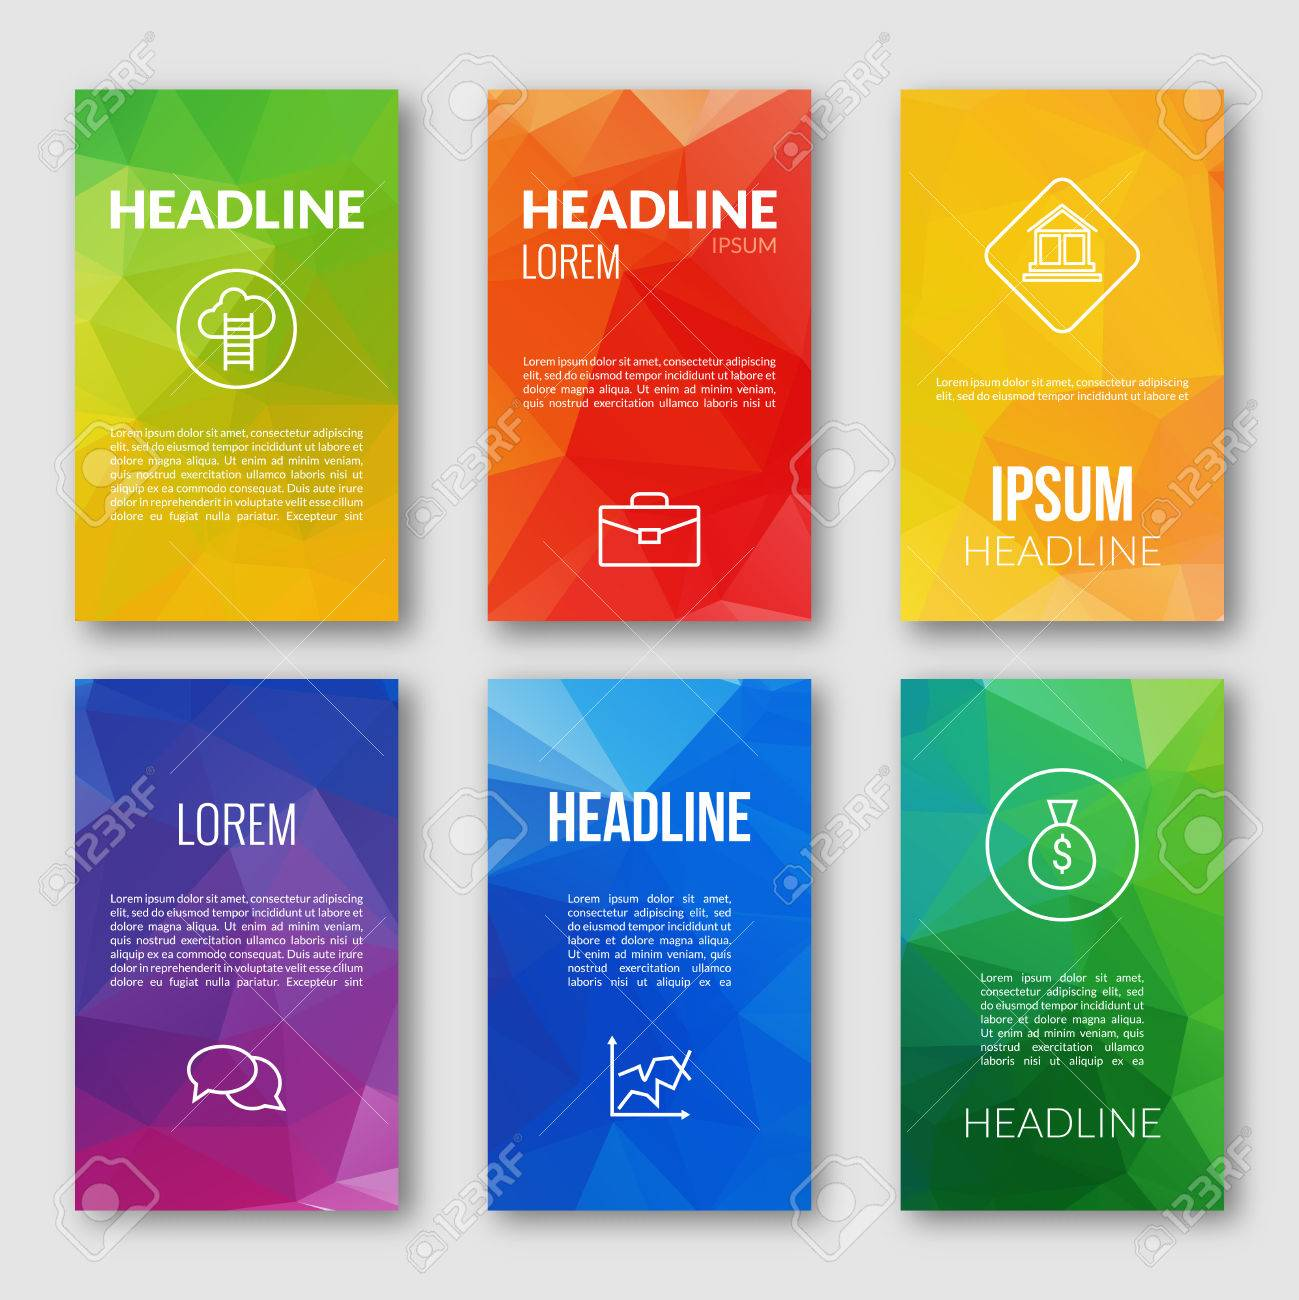 Web Design Set Template Business Triangular Banners Brochures - Mobile app design templates